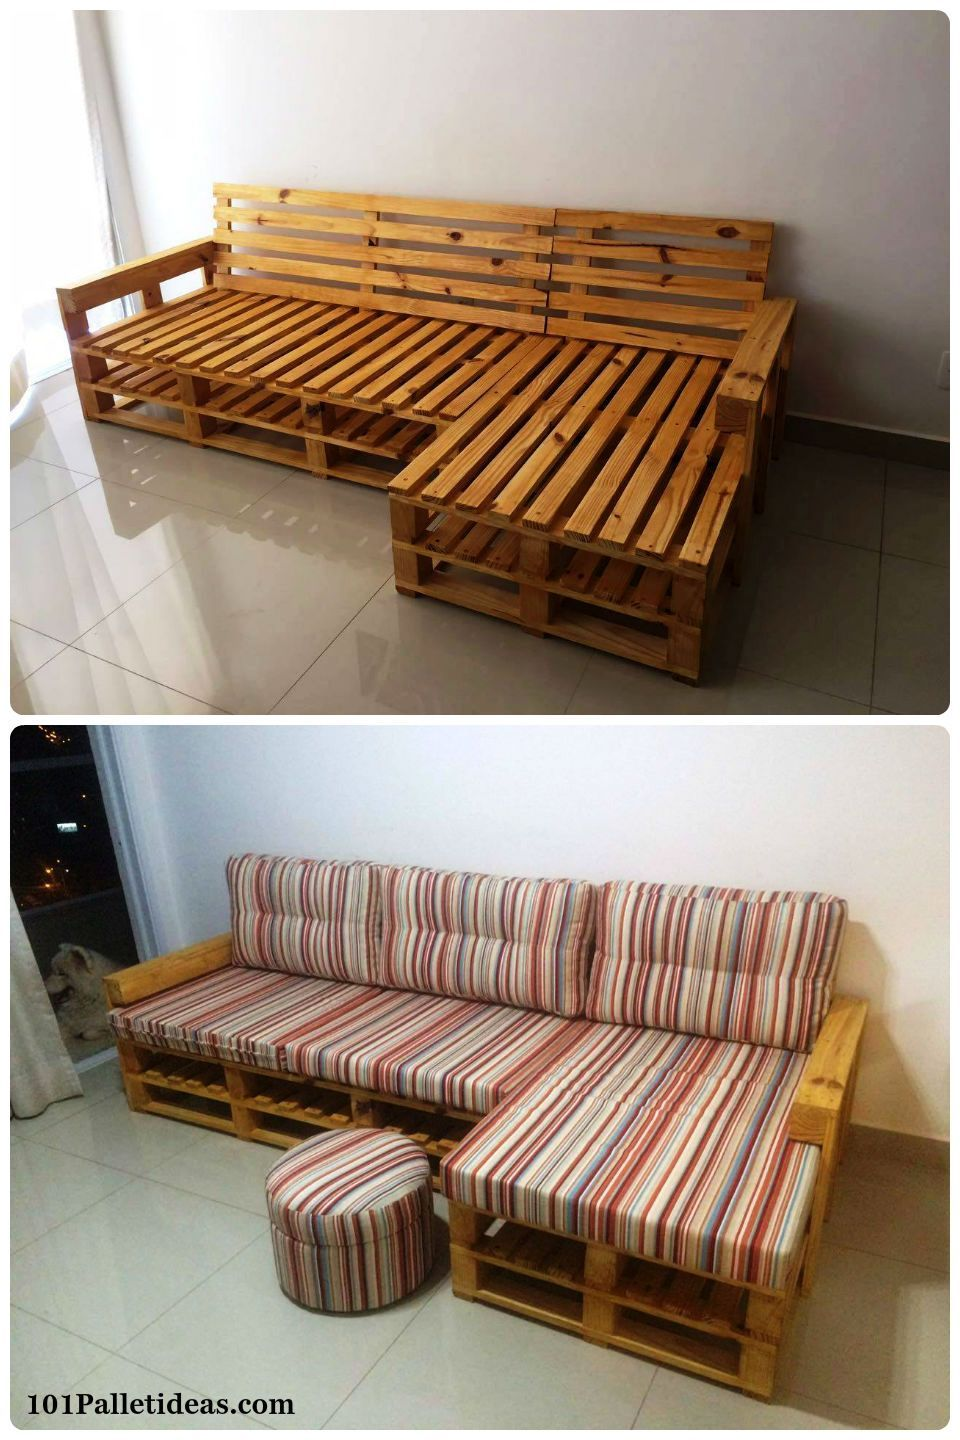 Sofa De Pallet Quintal 20 Pallet Ideas You Can Diy For Your Home Ideias Pallet Diy